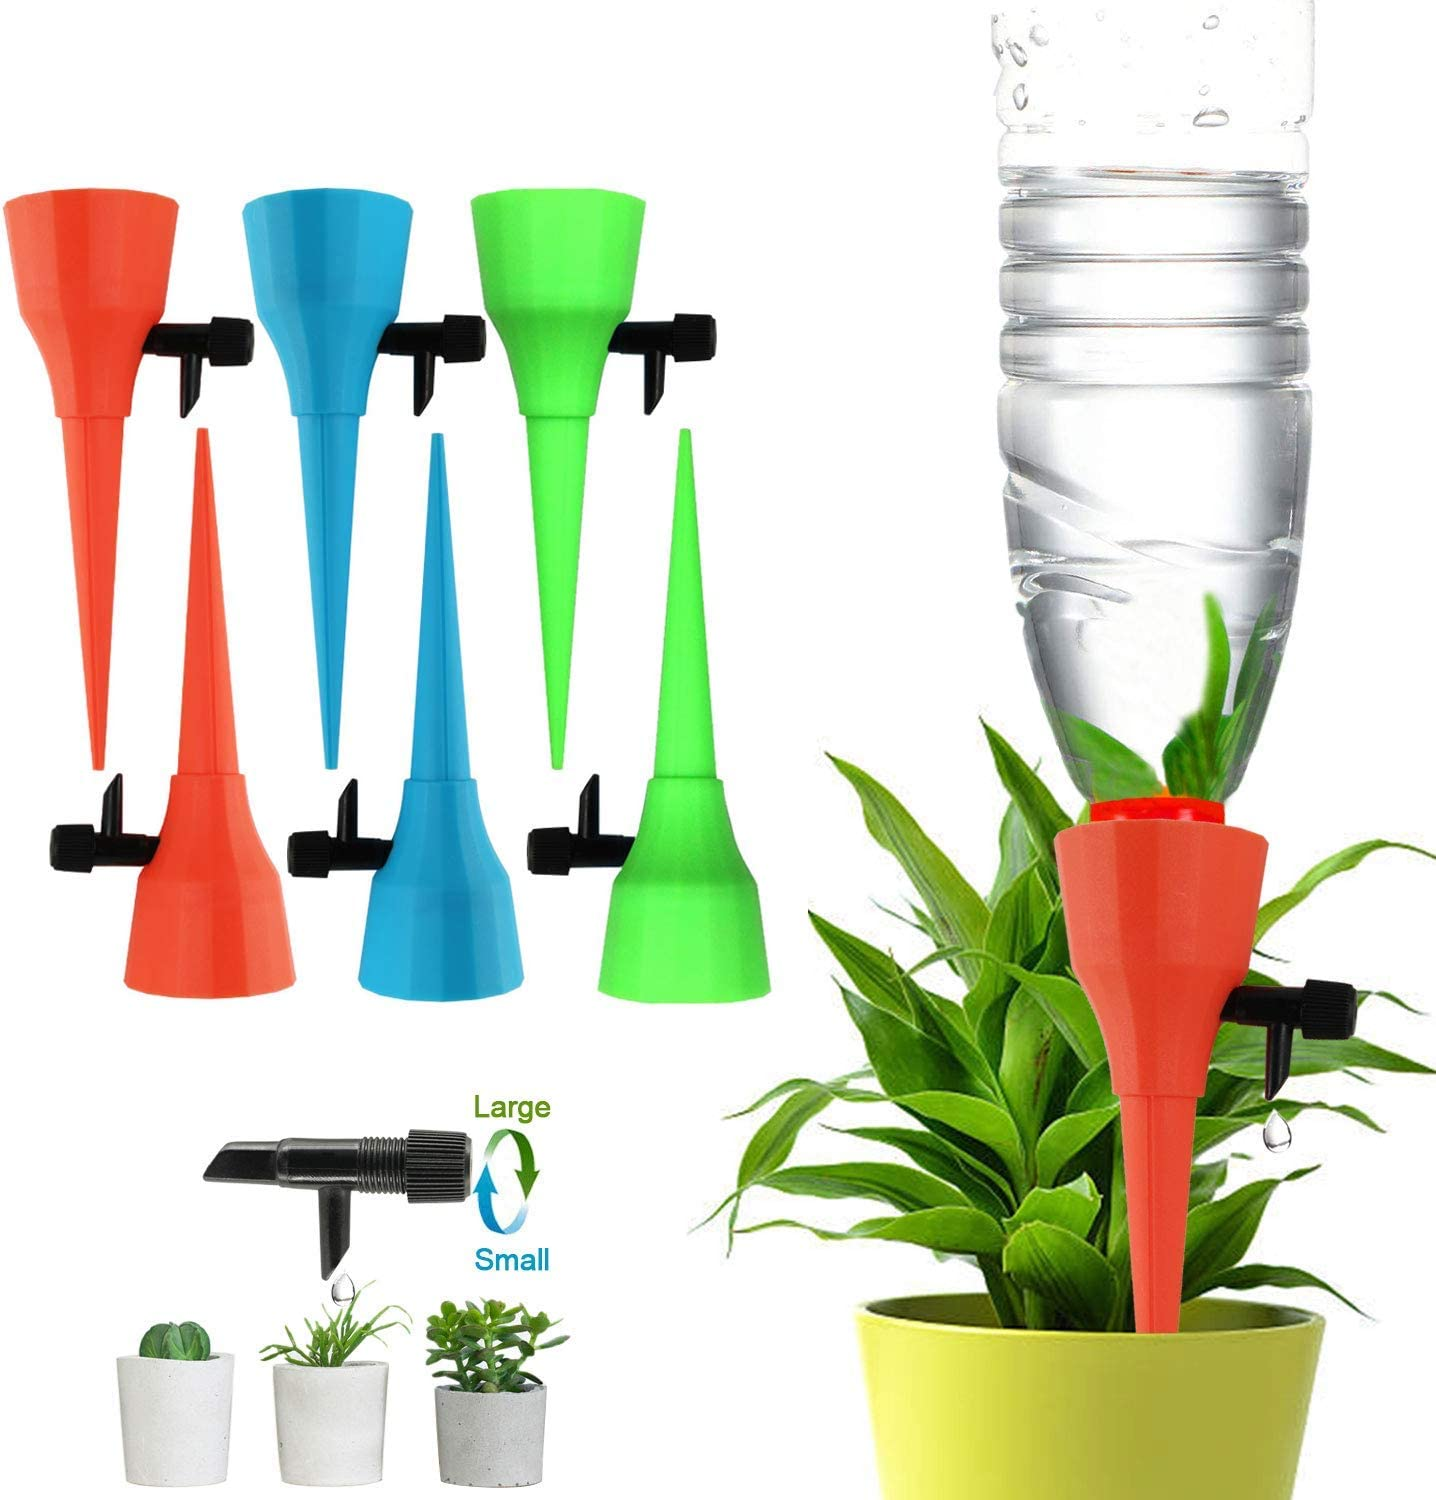 SERENDIPPER Plant Watering Spikes for Different Diameter Bottles, Automatic Irrigation Spikes with Adjustable Dripping Speed, Constant Watering Self-Dripping Irrigation Plant Waterer with No Leak